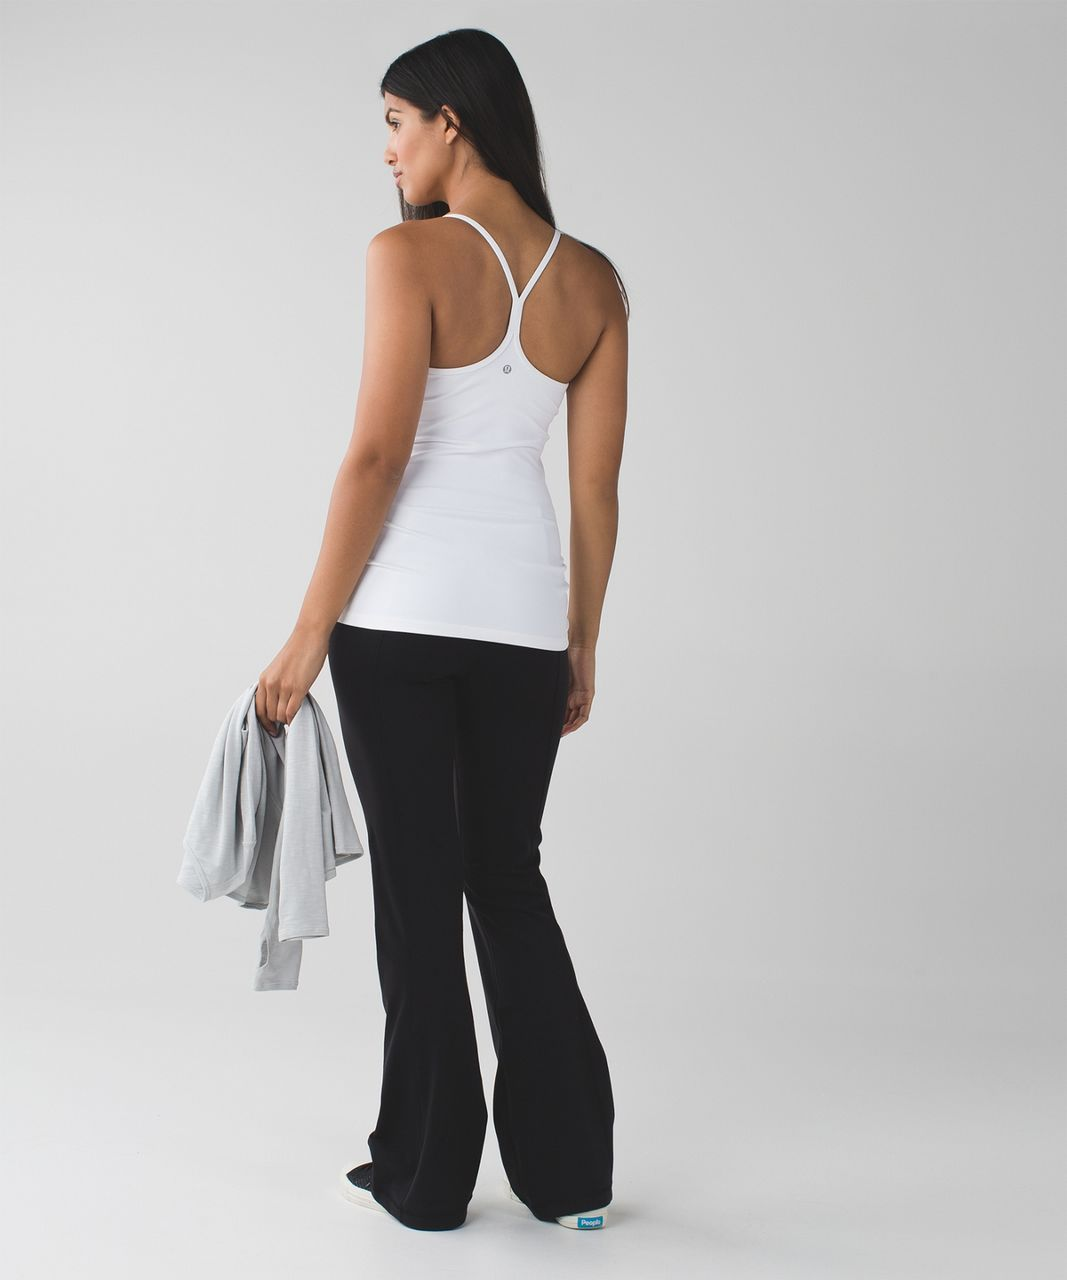 Lululemon Groove Pant III (Tall) *Full-On Luon - Black / Dramatic Static White Black